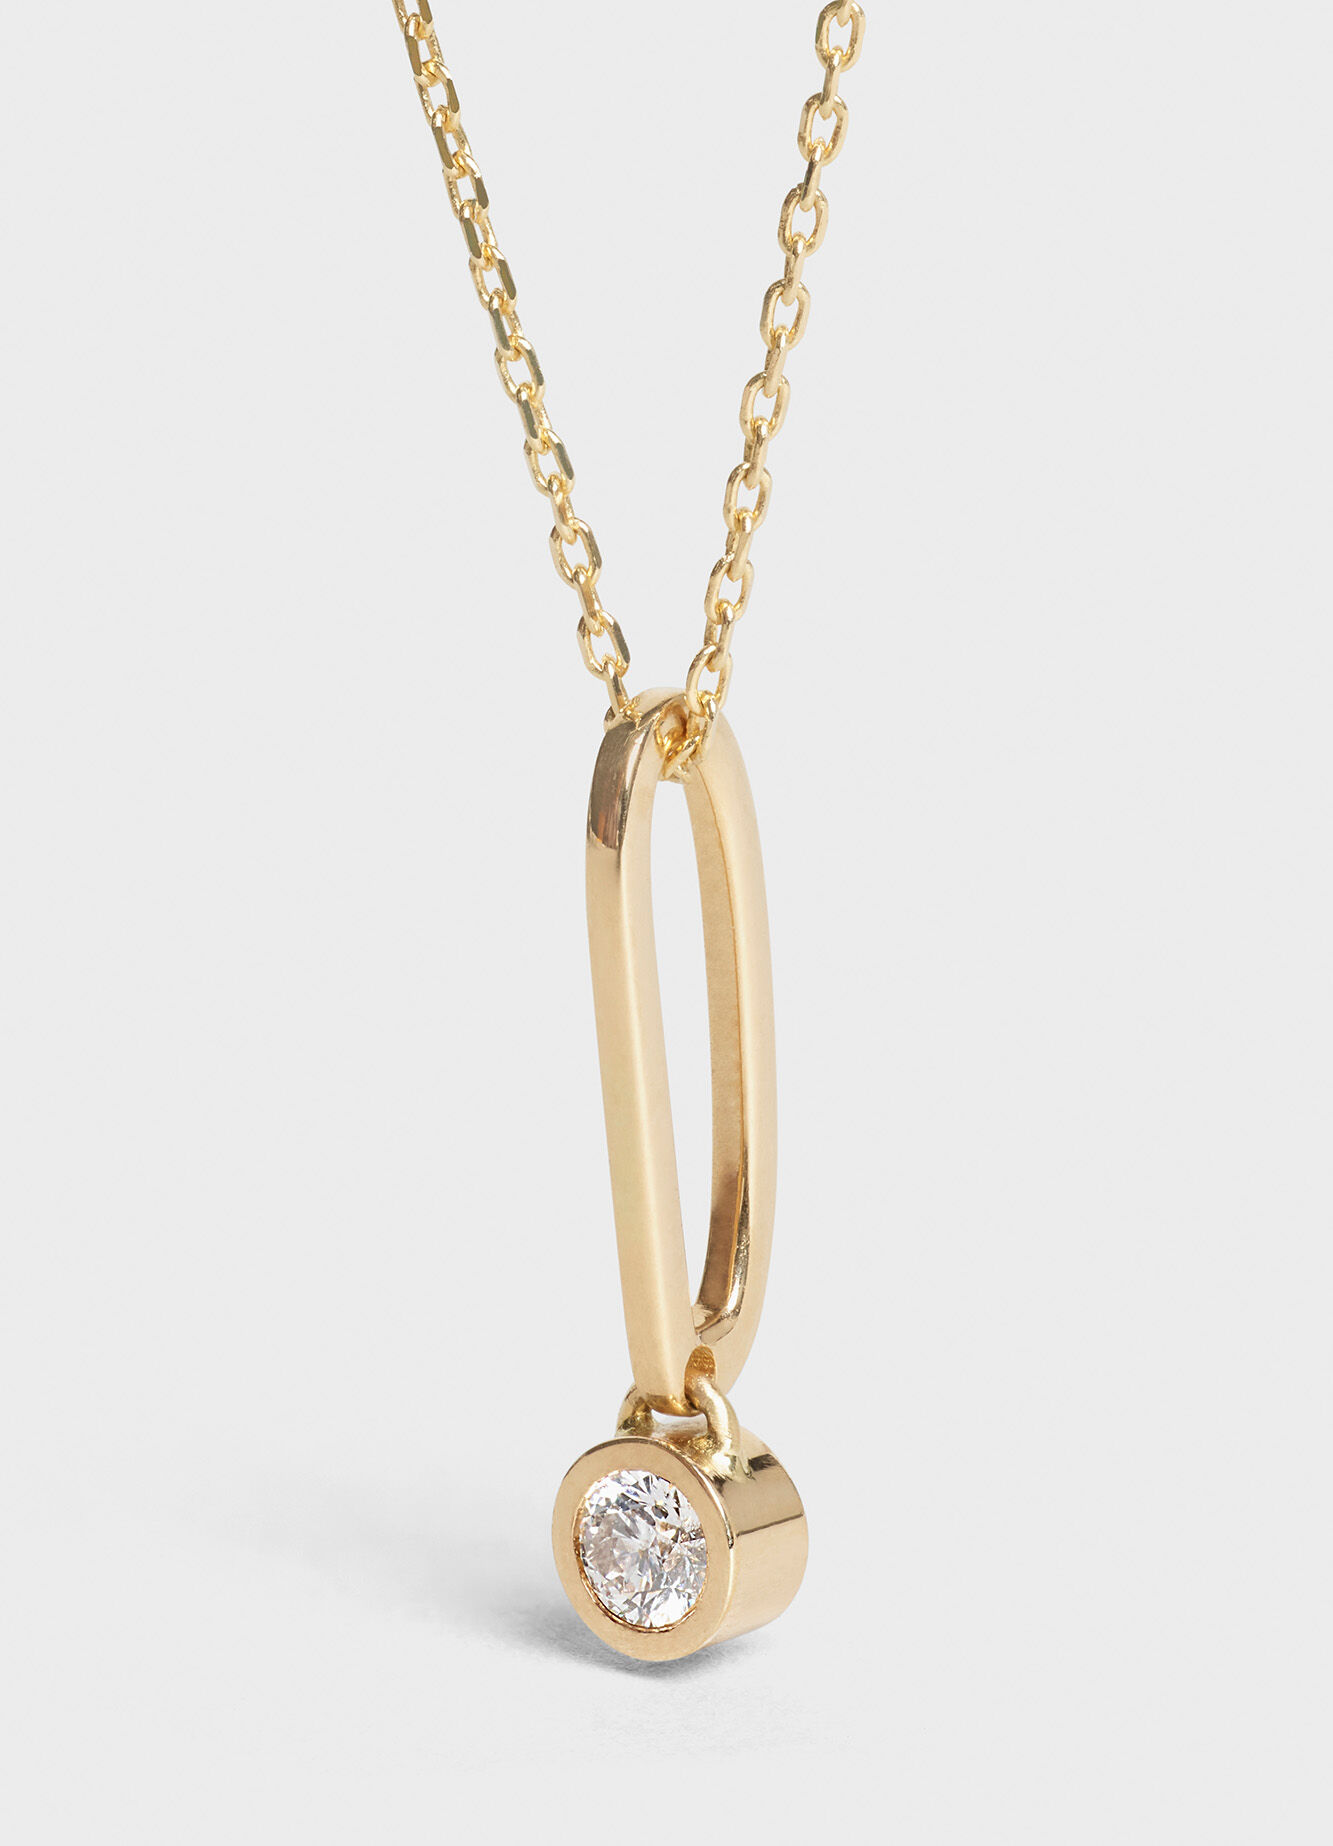 CELINE SENTIMENTAL BRILLIANT NECKLACE IN YELLOW GOLD AND WHITE